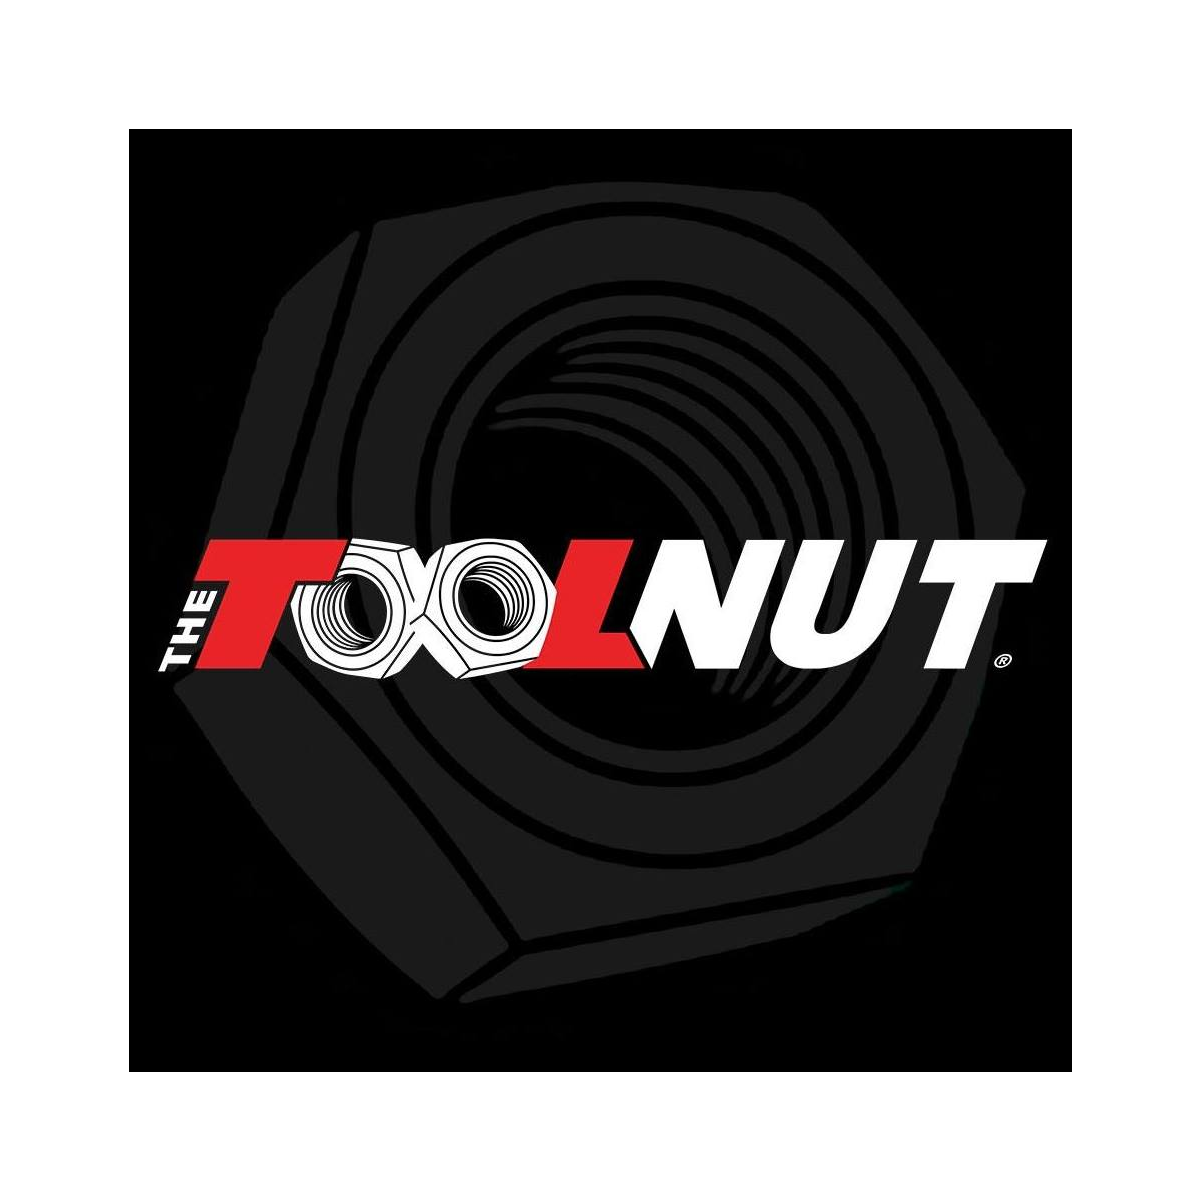 The Tool Nut